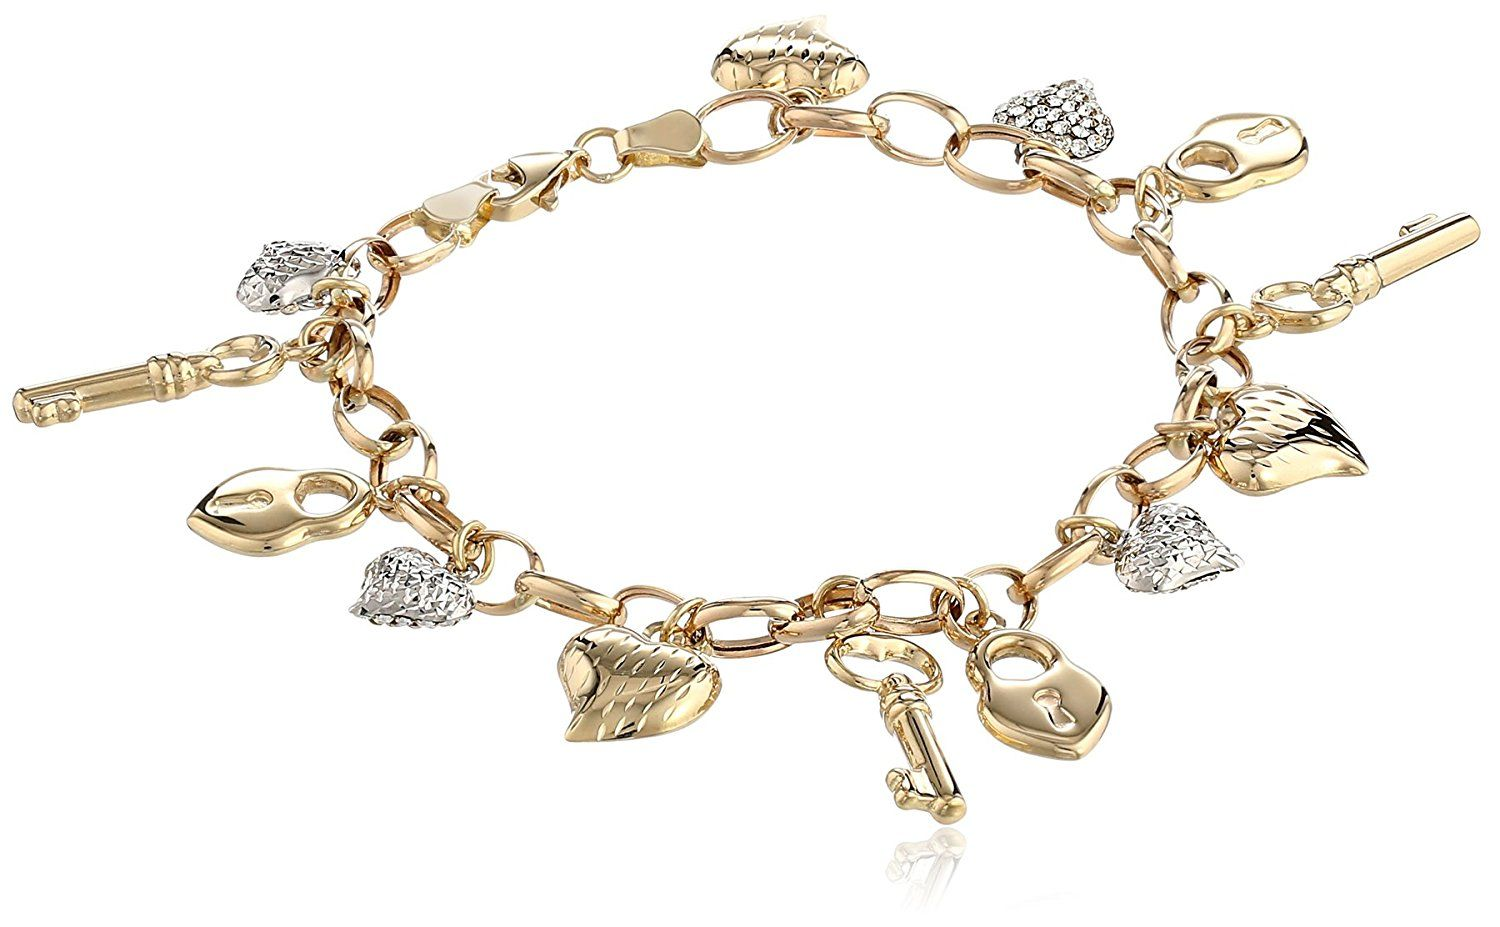 K Yellow White Gold Heart Lock and Key Link Charm Bracelet